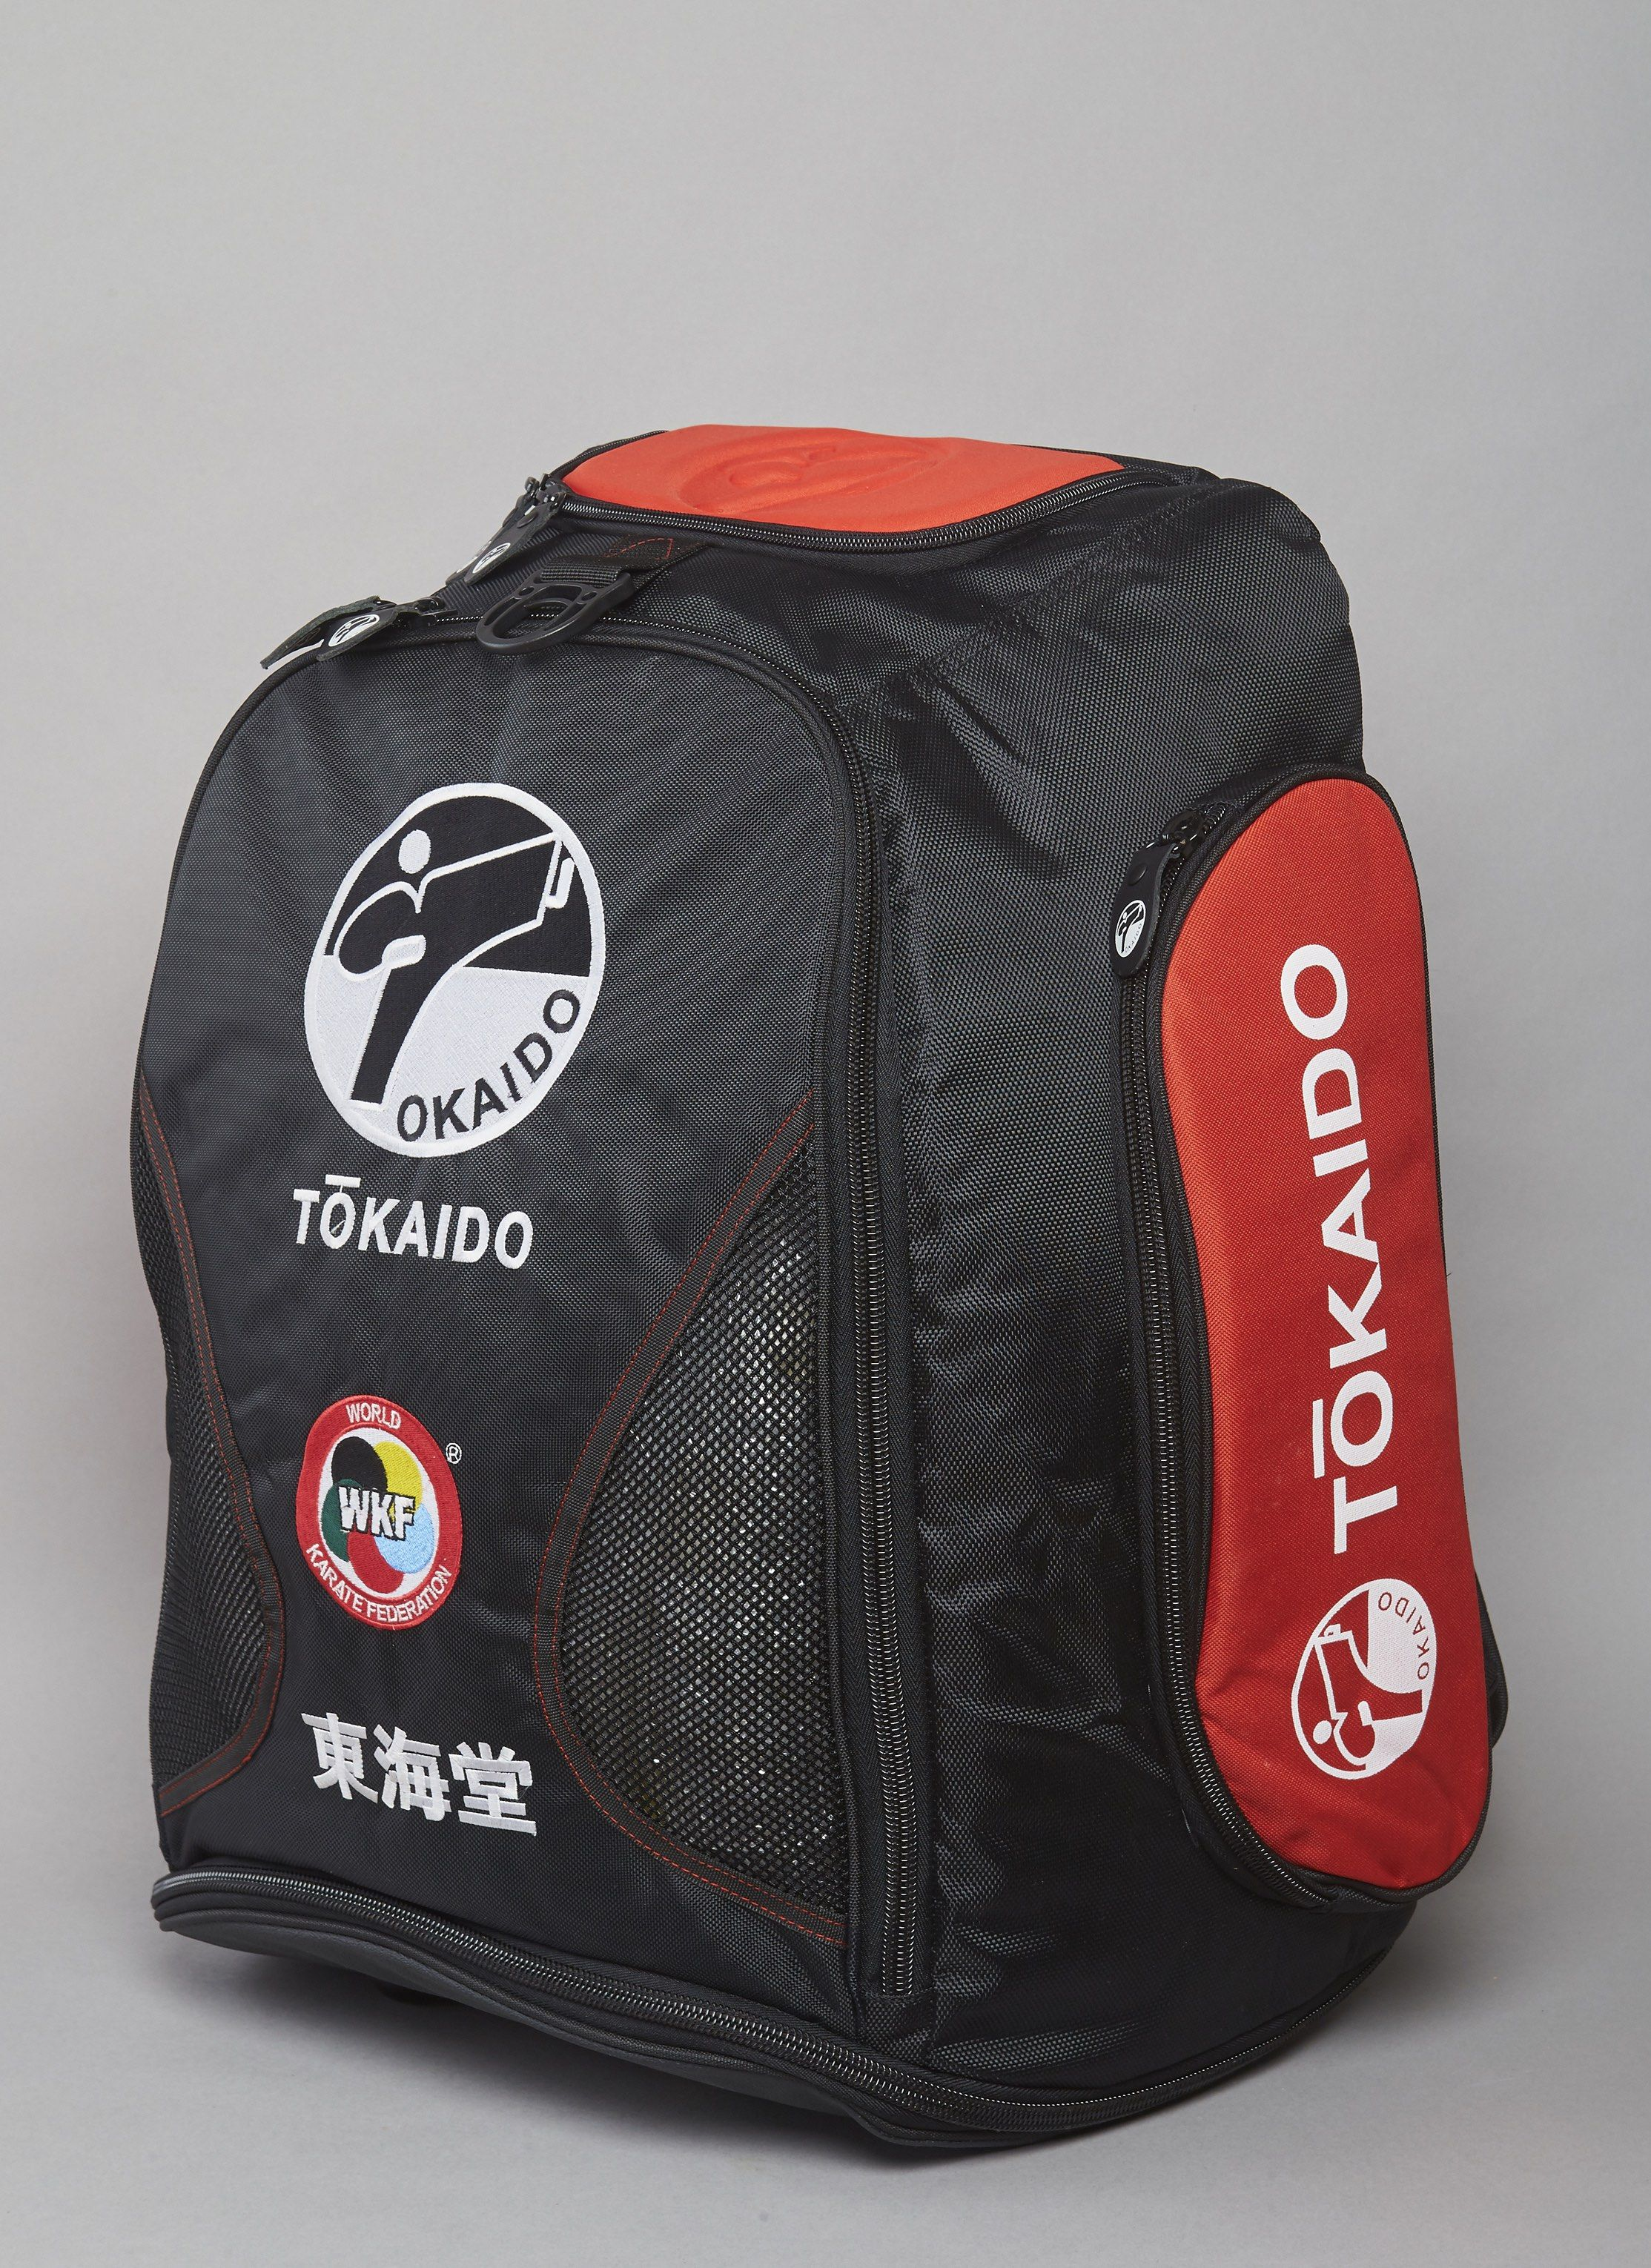 47b84ca0c4 MULTI-FUNCTIONAL SPORTS BAG - Japan Special Edition